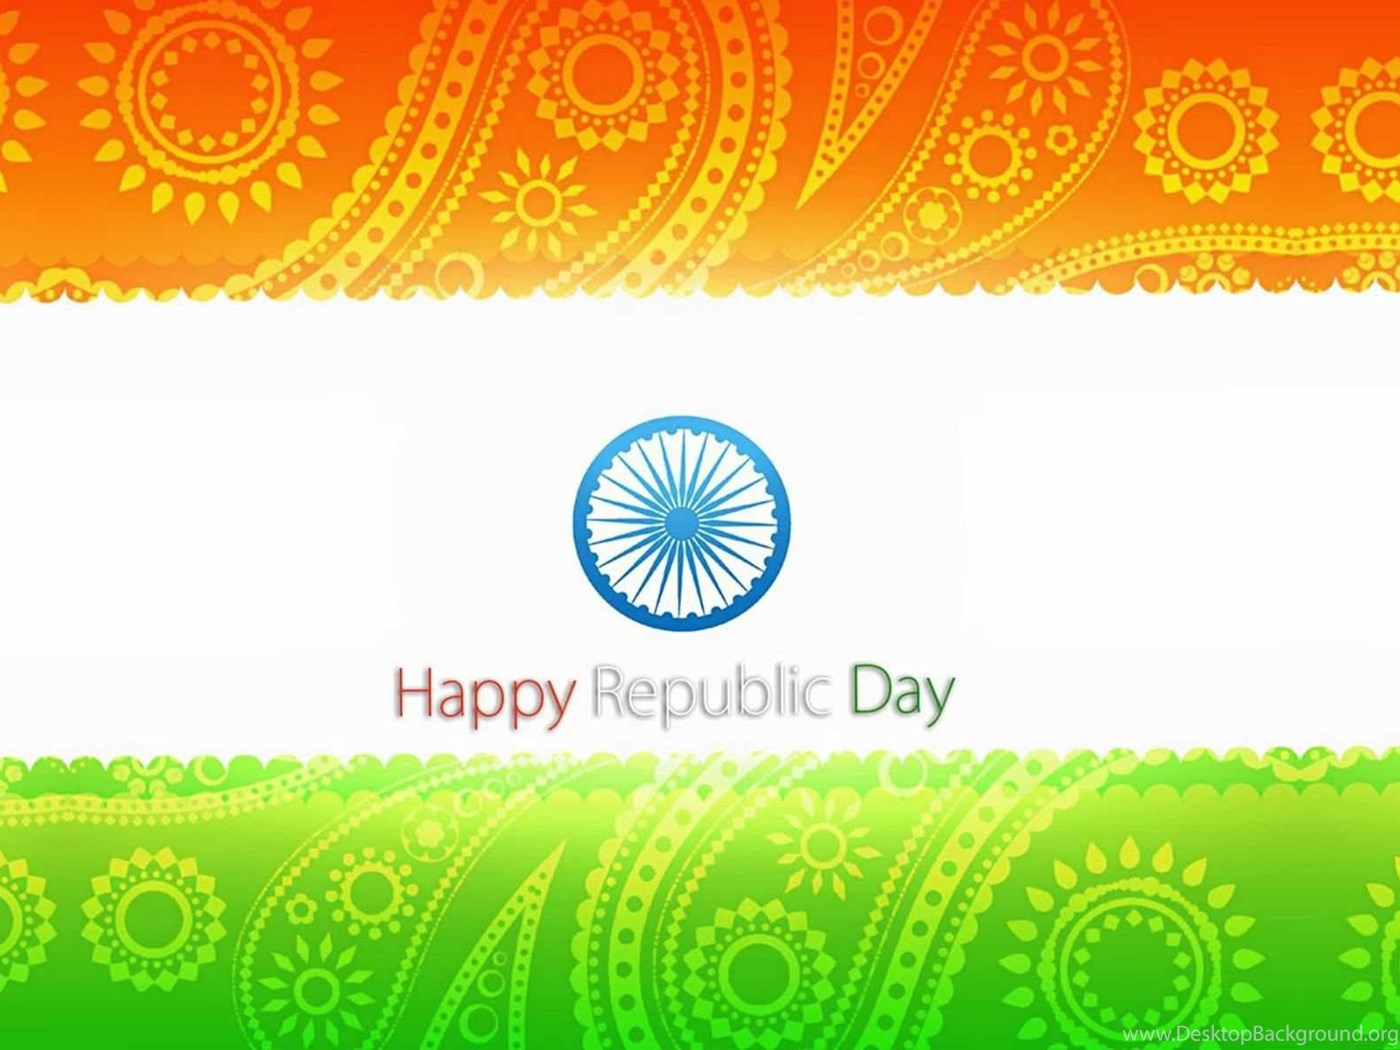 Indian flag wallpapers hd best collection of flag of india - Indian flag hd wallpaper for android ...